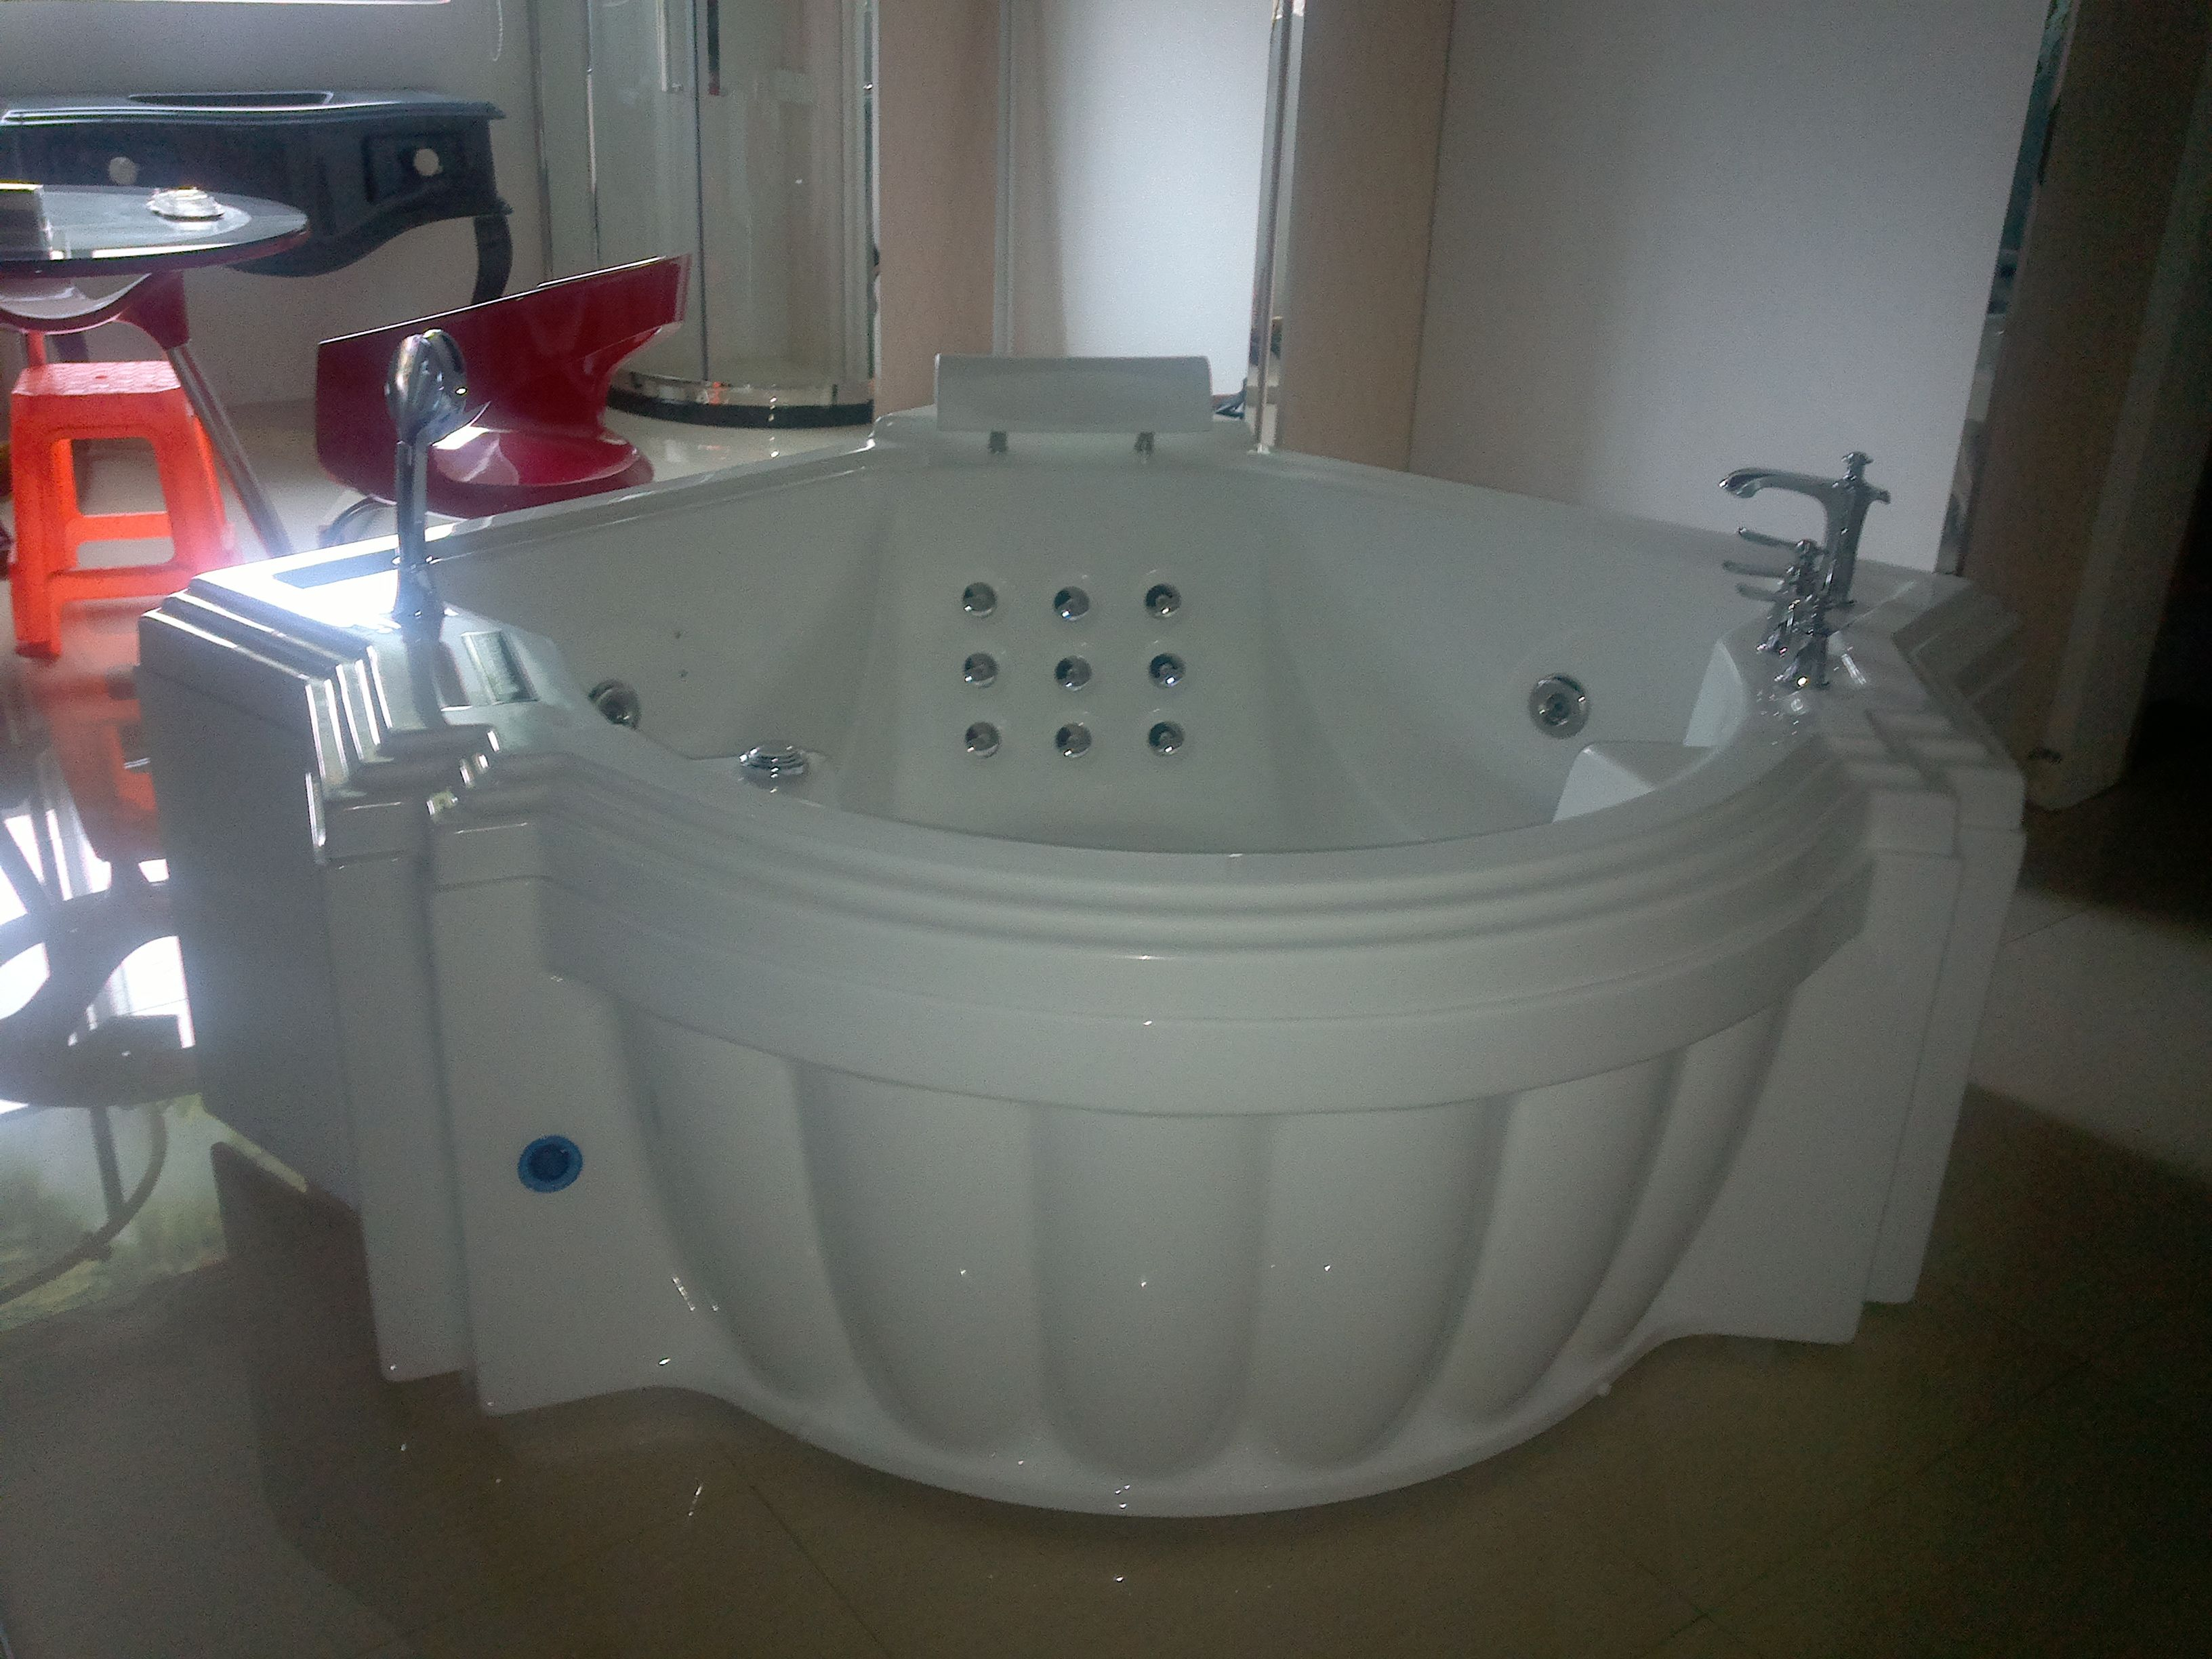 new model | massage bathtub | Pinterest | Bathtubs